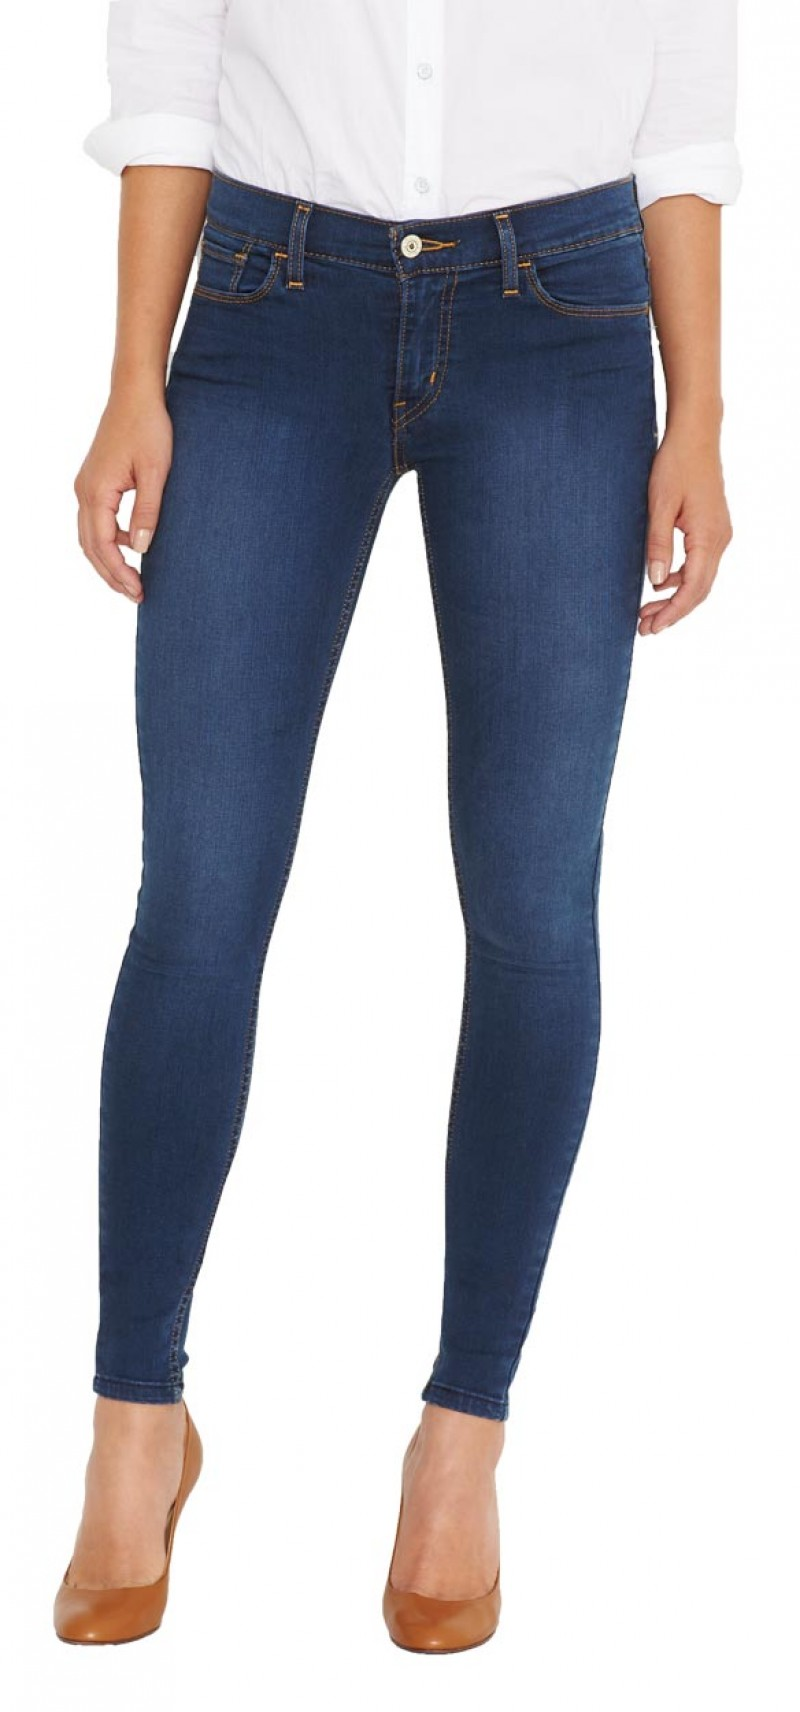 Levis Innovation Super Skinny - Blue Jay